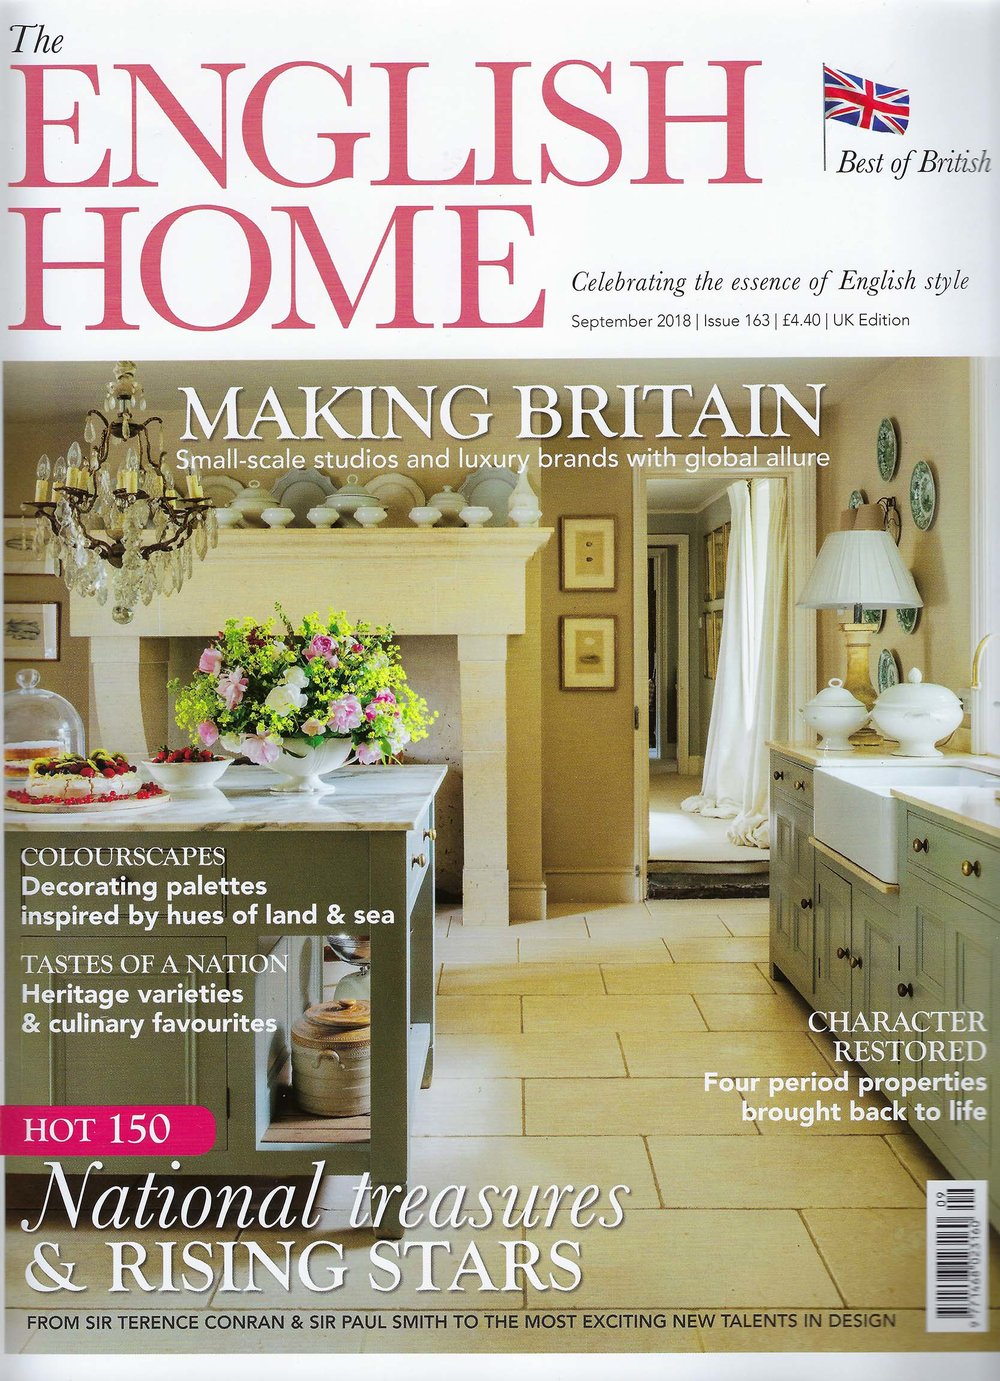 The English Home September 2018.jpeg